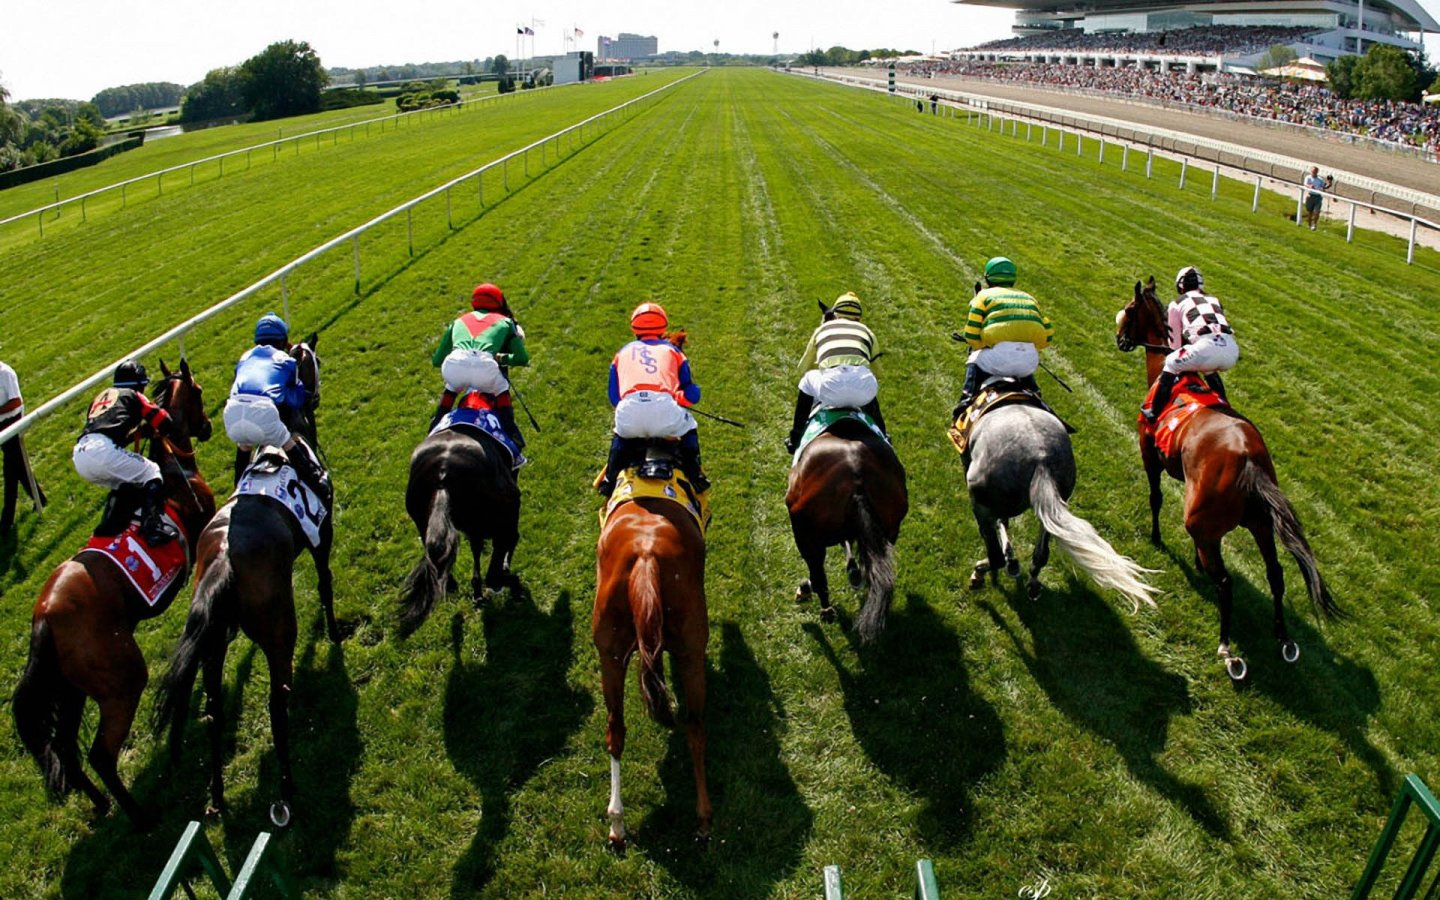 The Best Horse to Bet on Horses